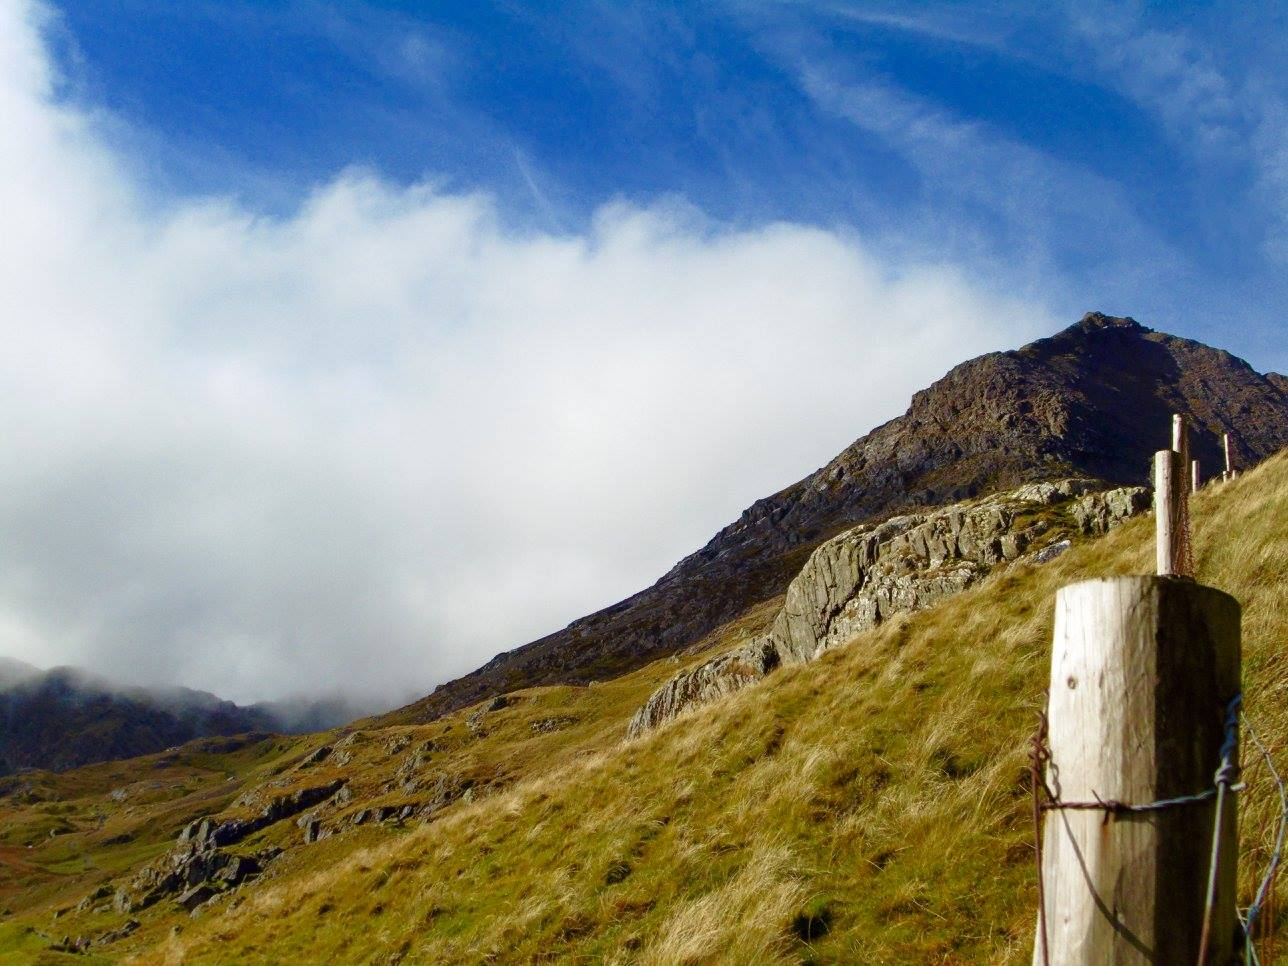 Crib Goch in Snowdon. The most challenging aspect of the mountain